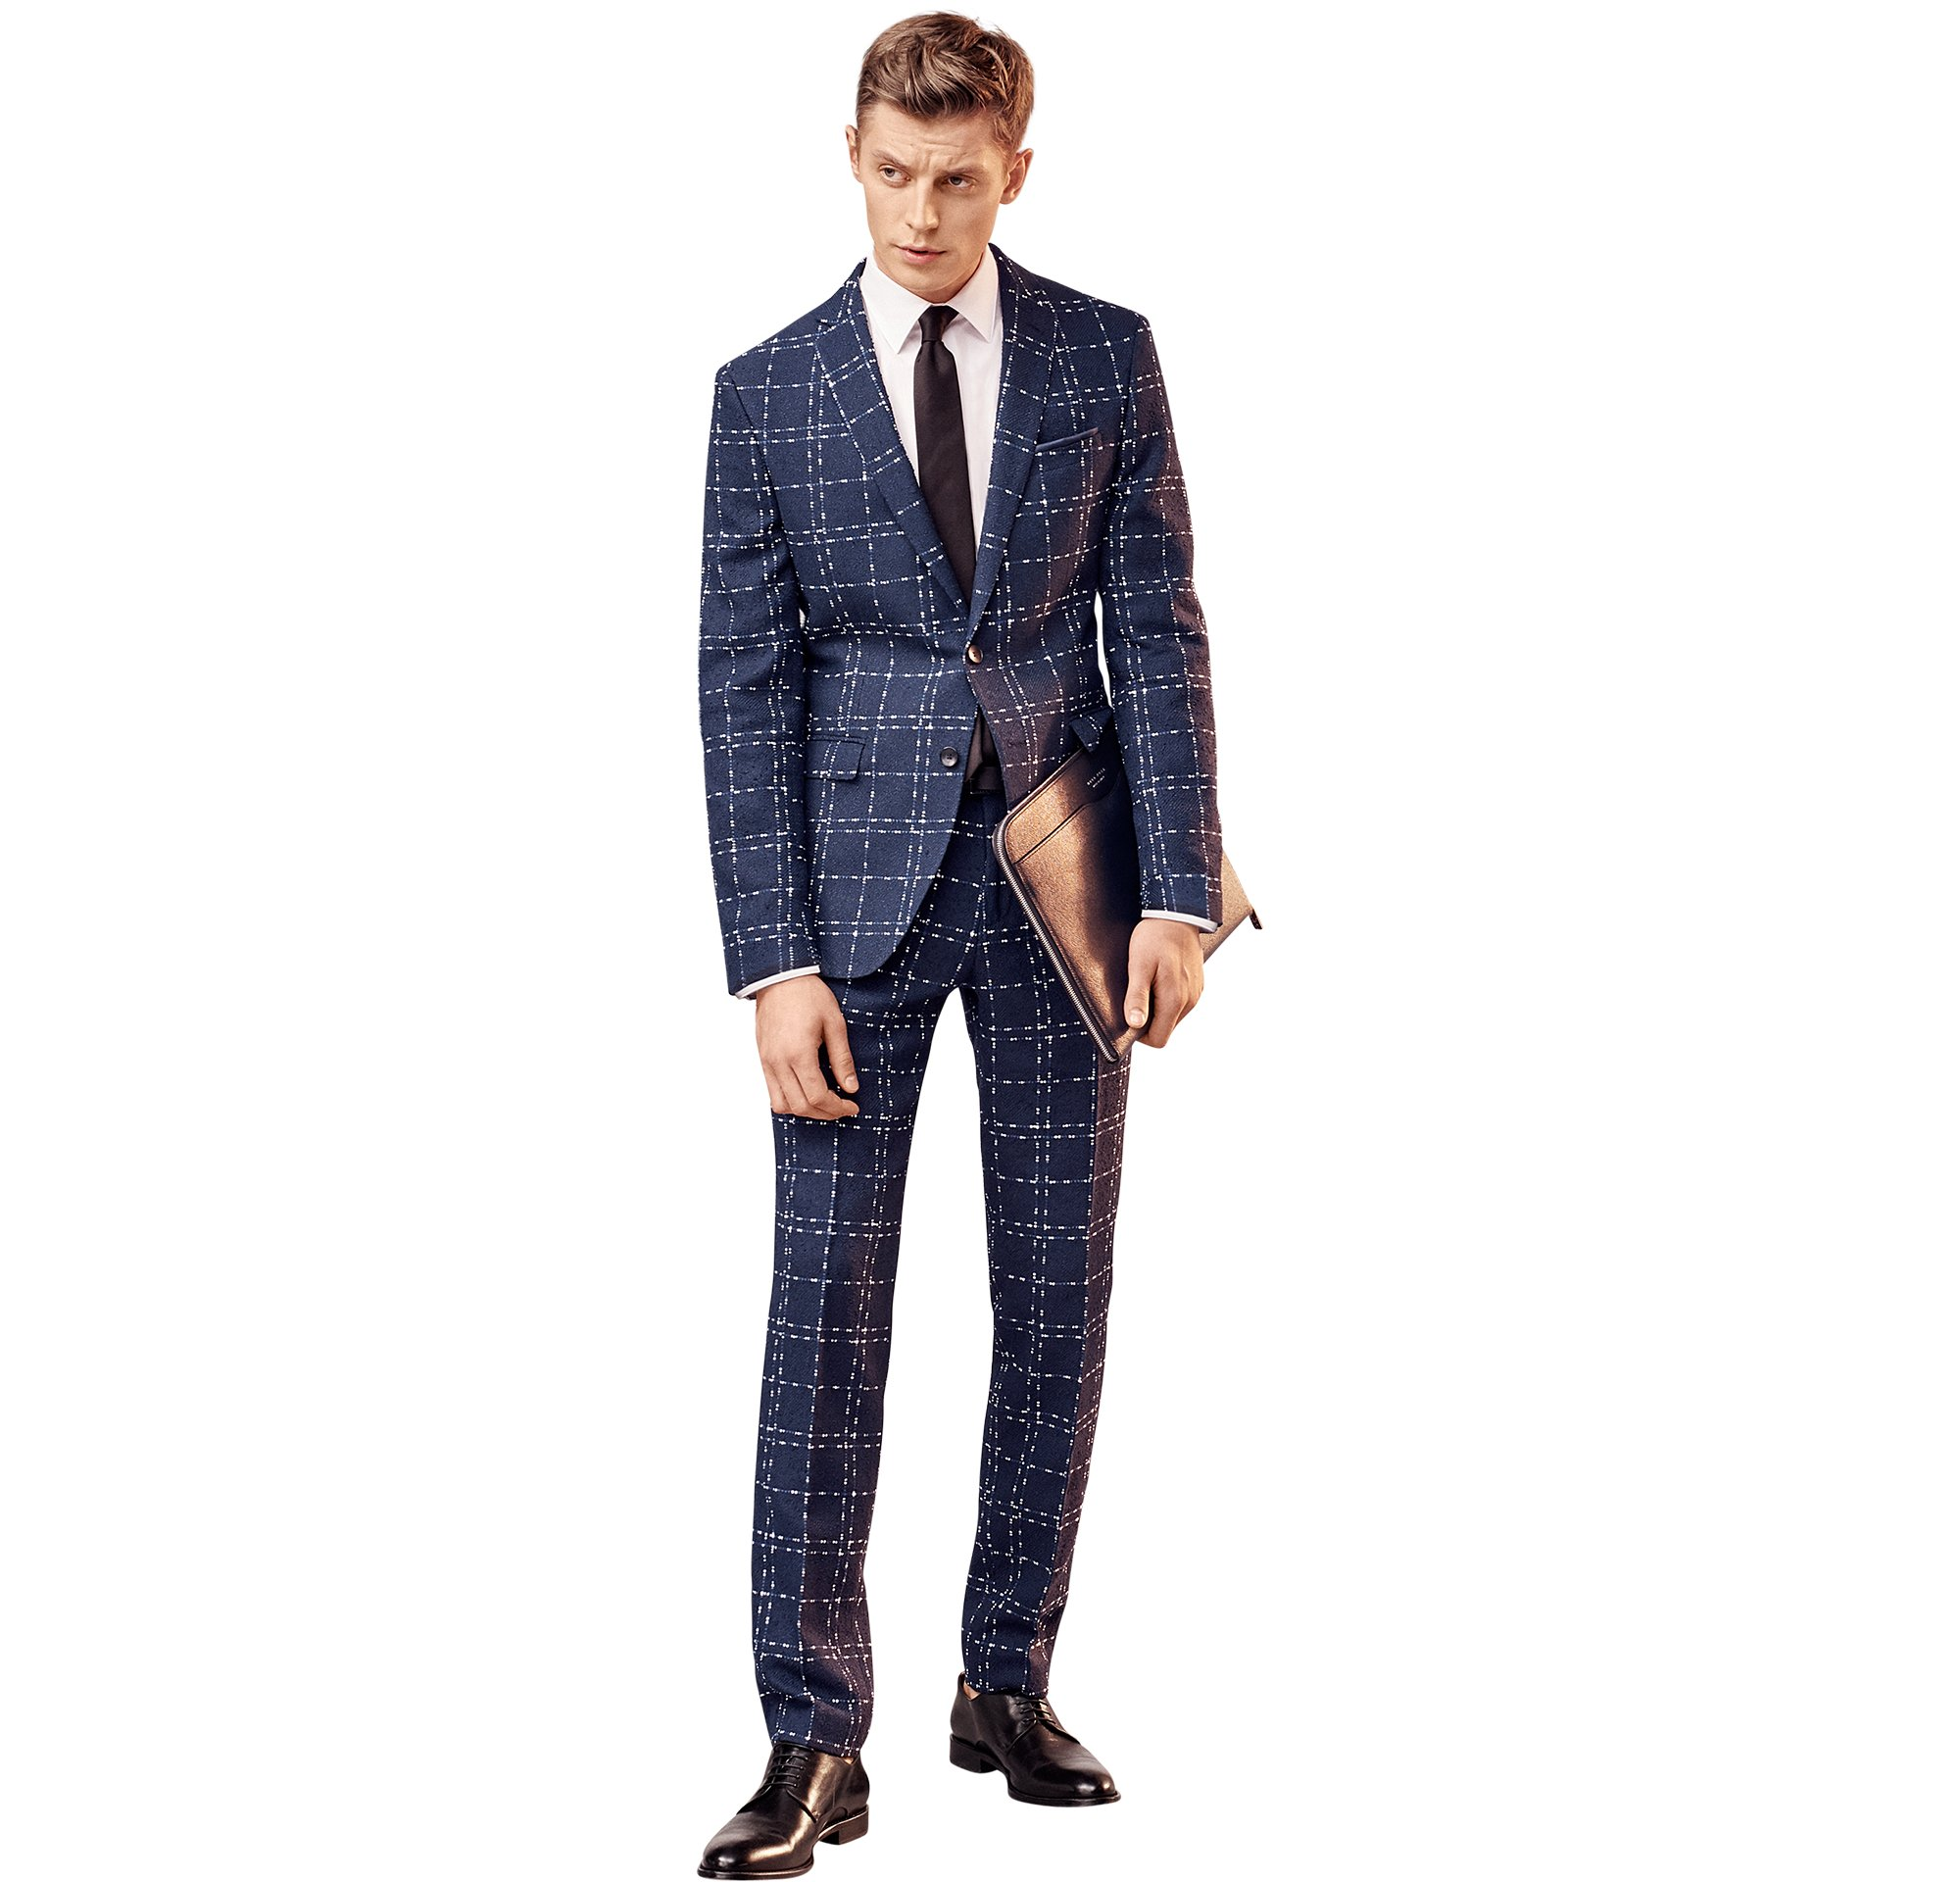 US_BOSS_Men_S17SR_Look_32,